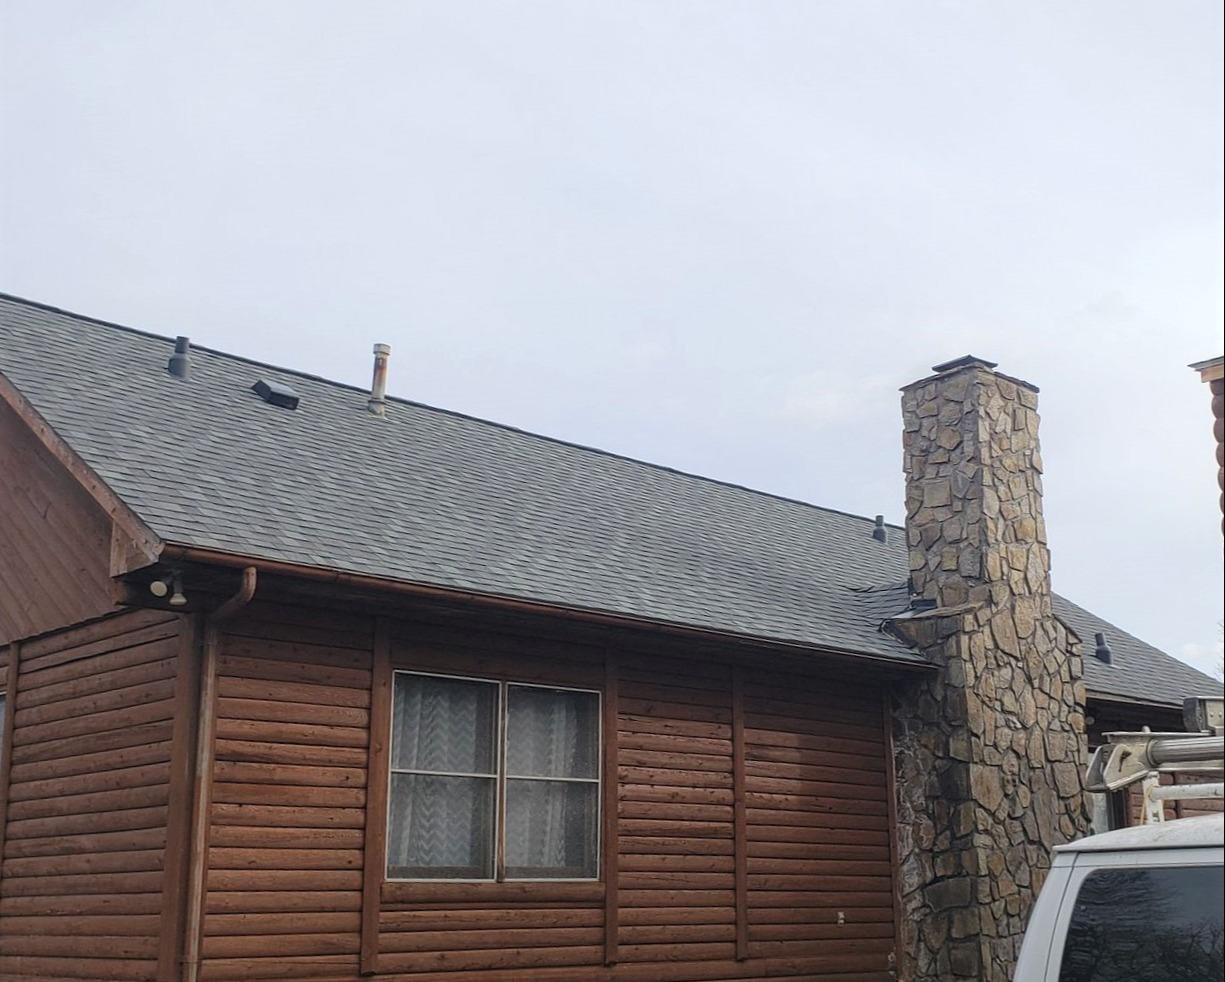 Walkertown, NC Shingle Roof Replacement - After Photo